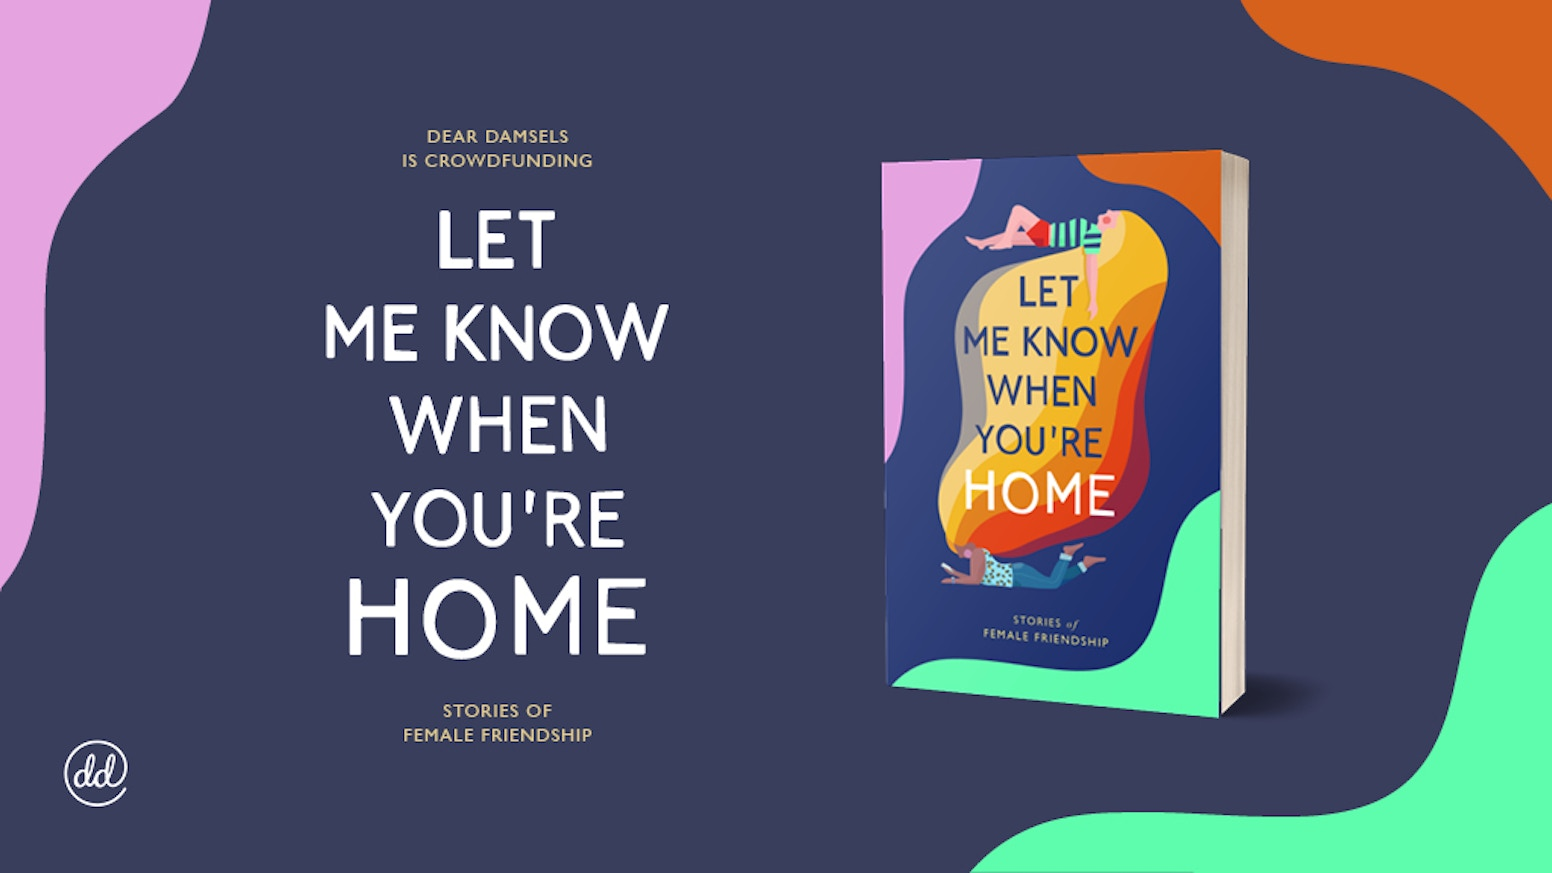 Let Me Know When You're Home: stories of female friendship will be published in February 2020. The collection features original work by women writers, including fiction, non-fiction and poetry.